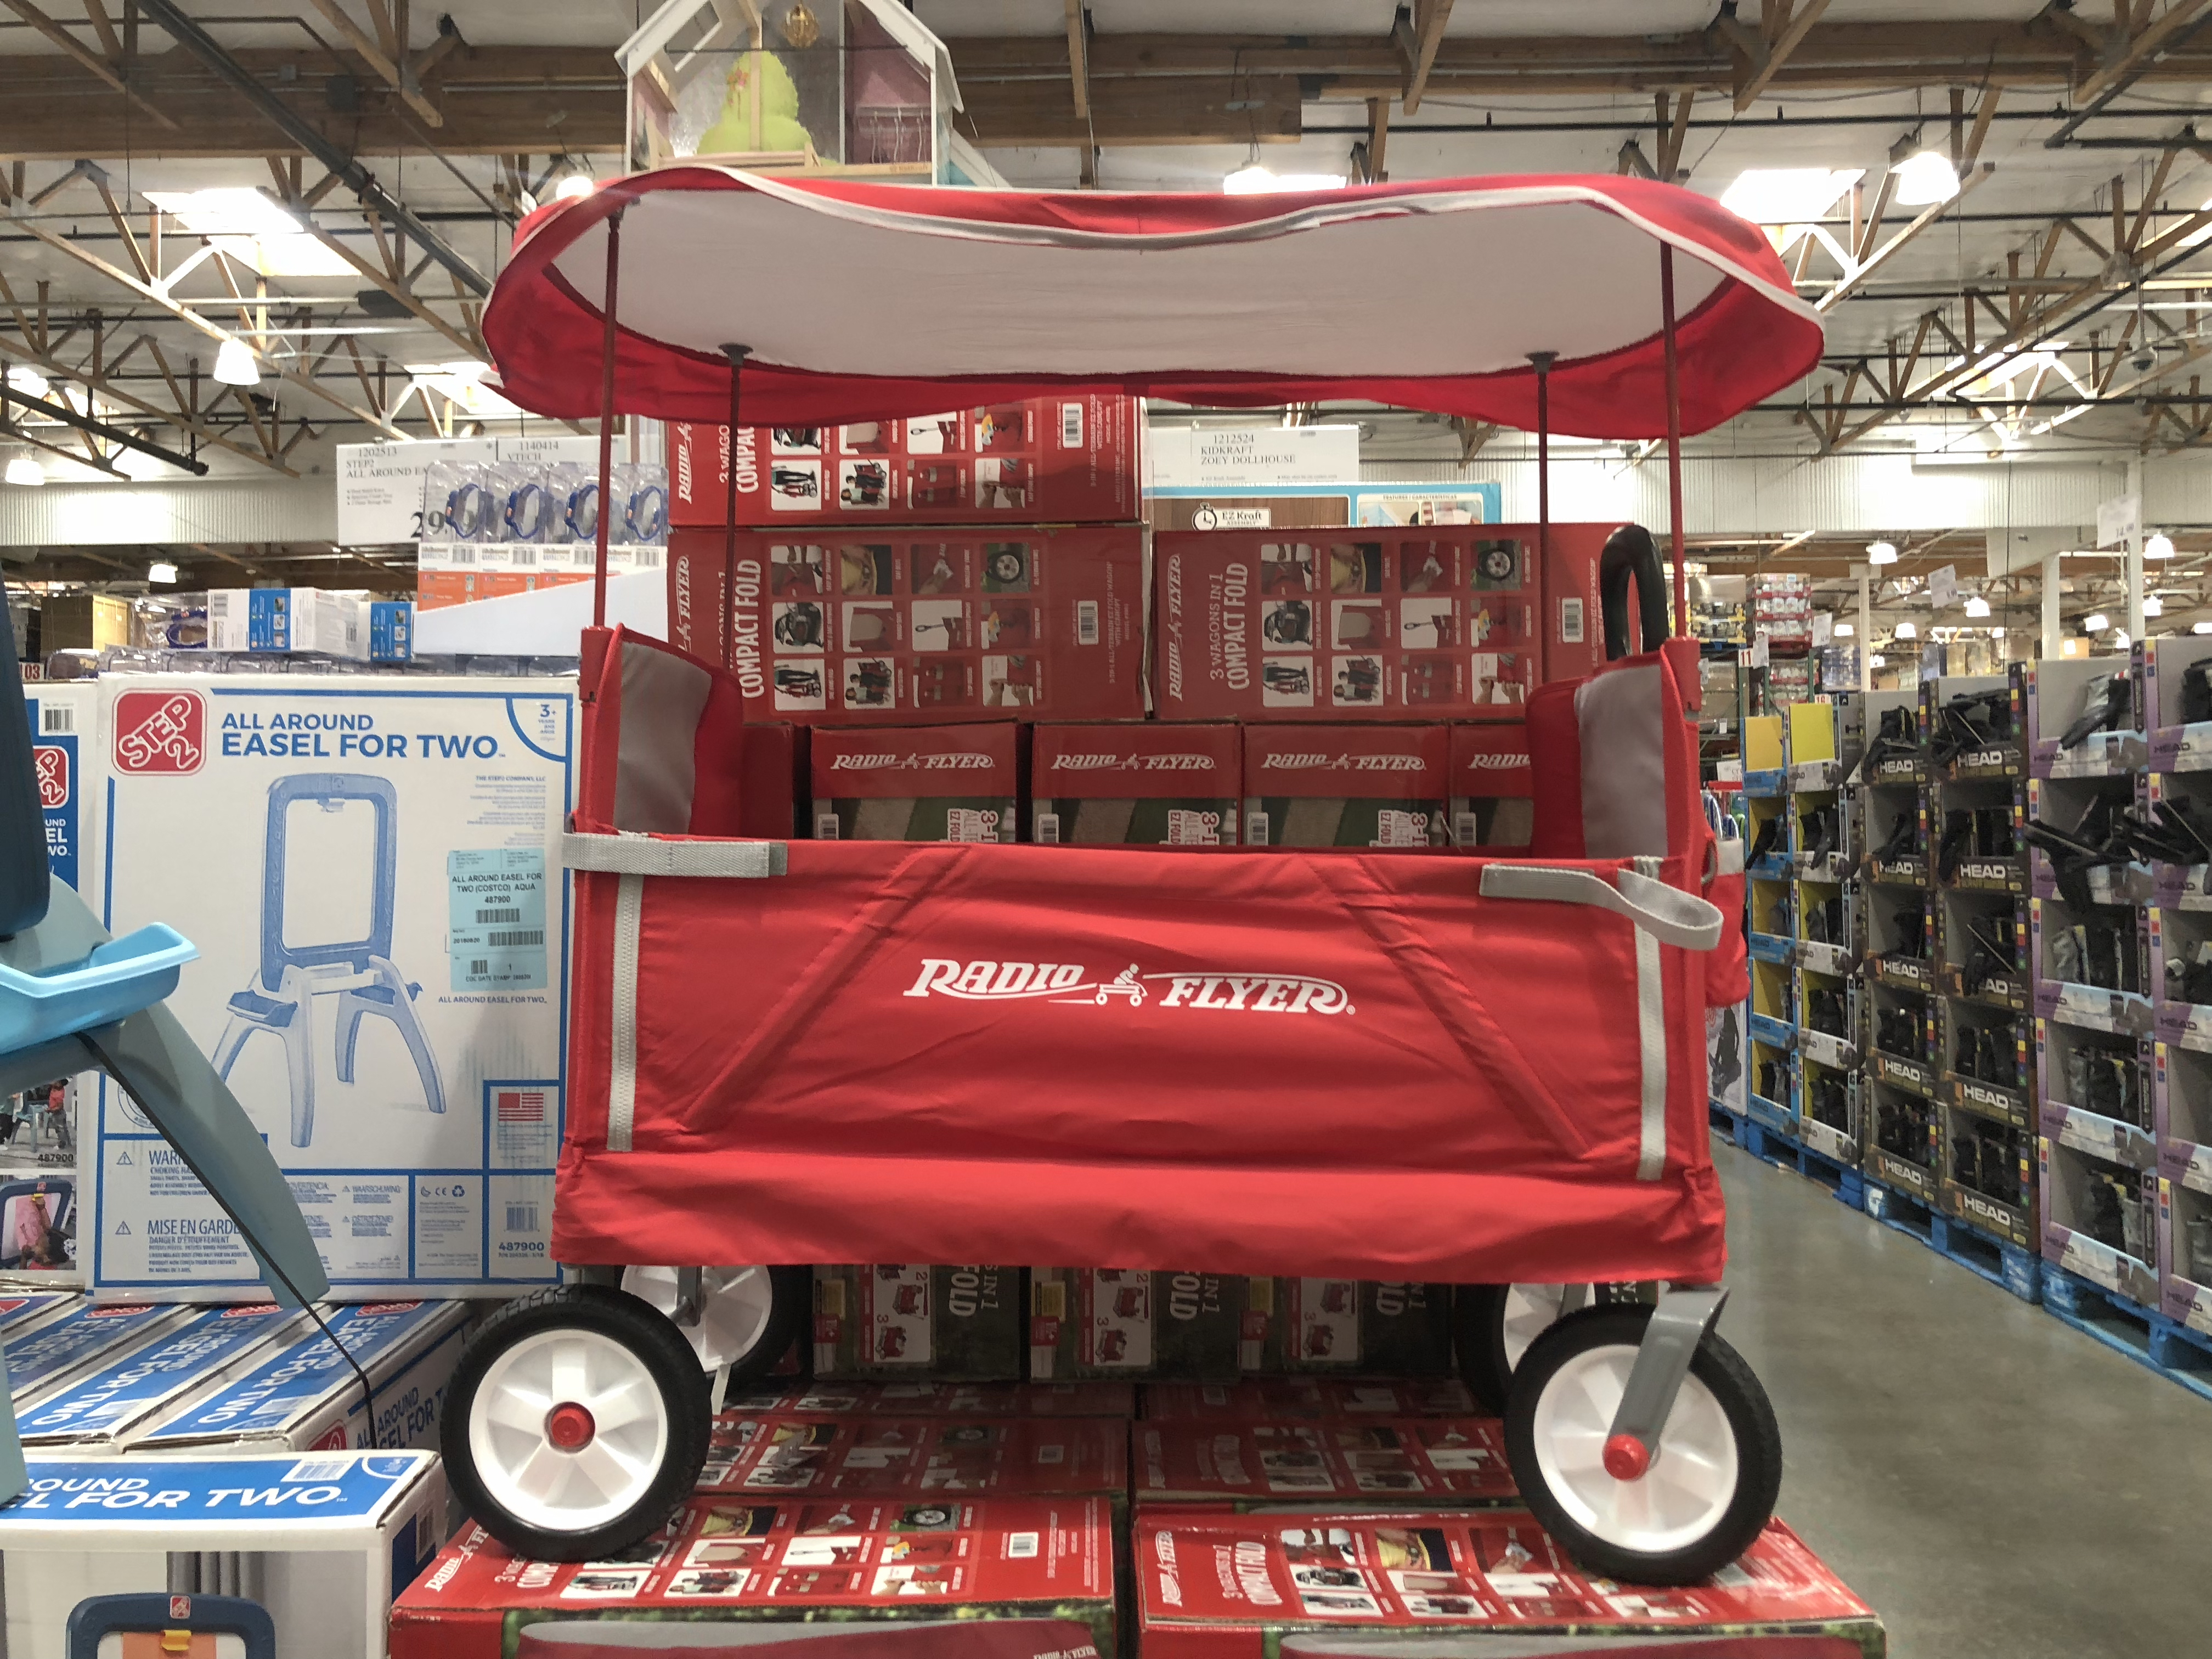 The best holiday toy deals for 2018 include the Radio Flyer wagon at Costco